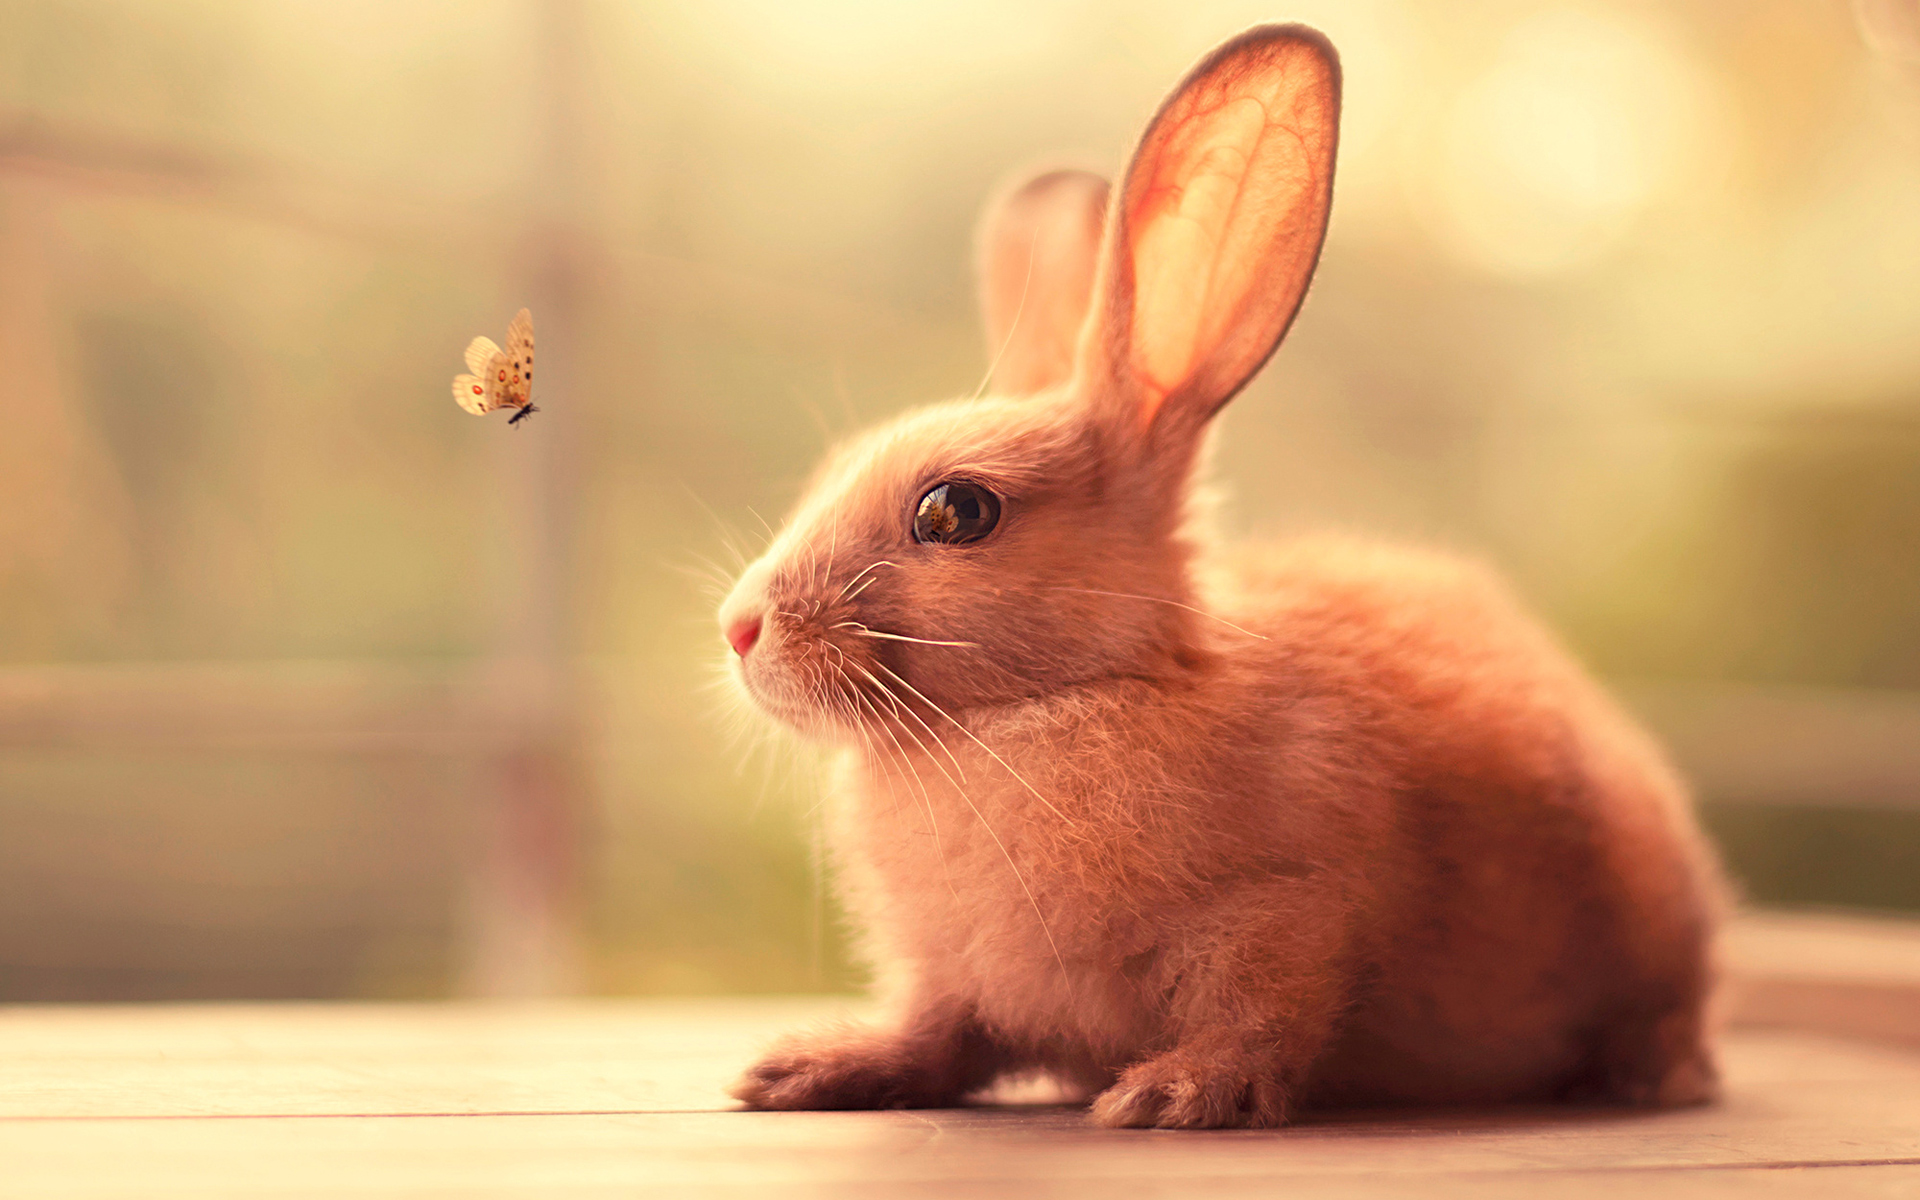 Butterfly flying towards a ginger rabbit wallpaper